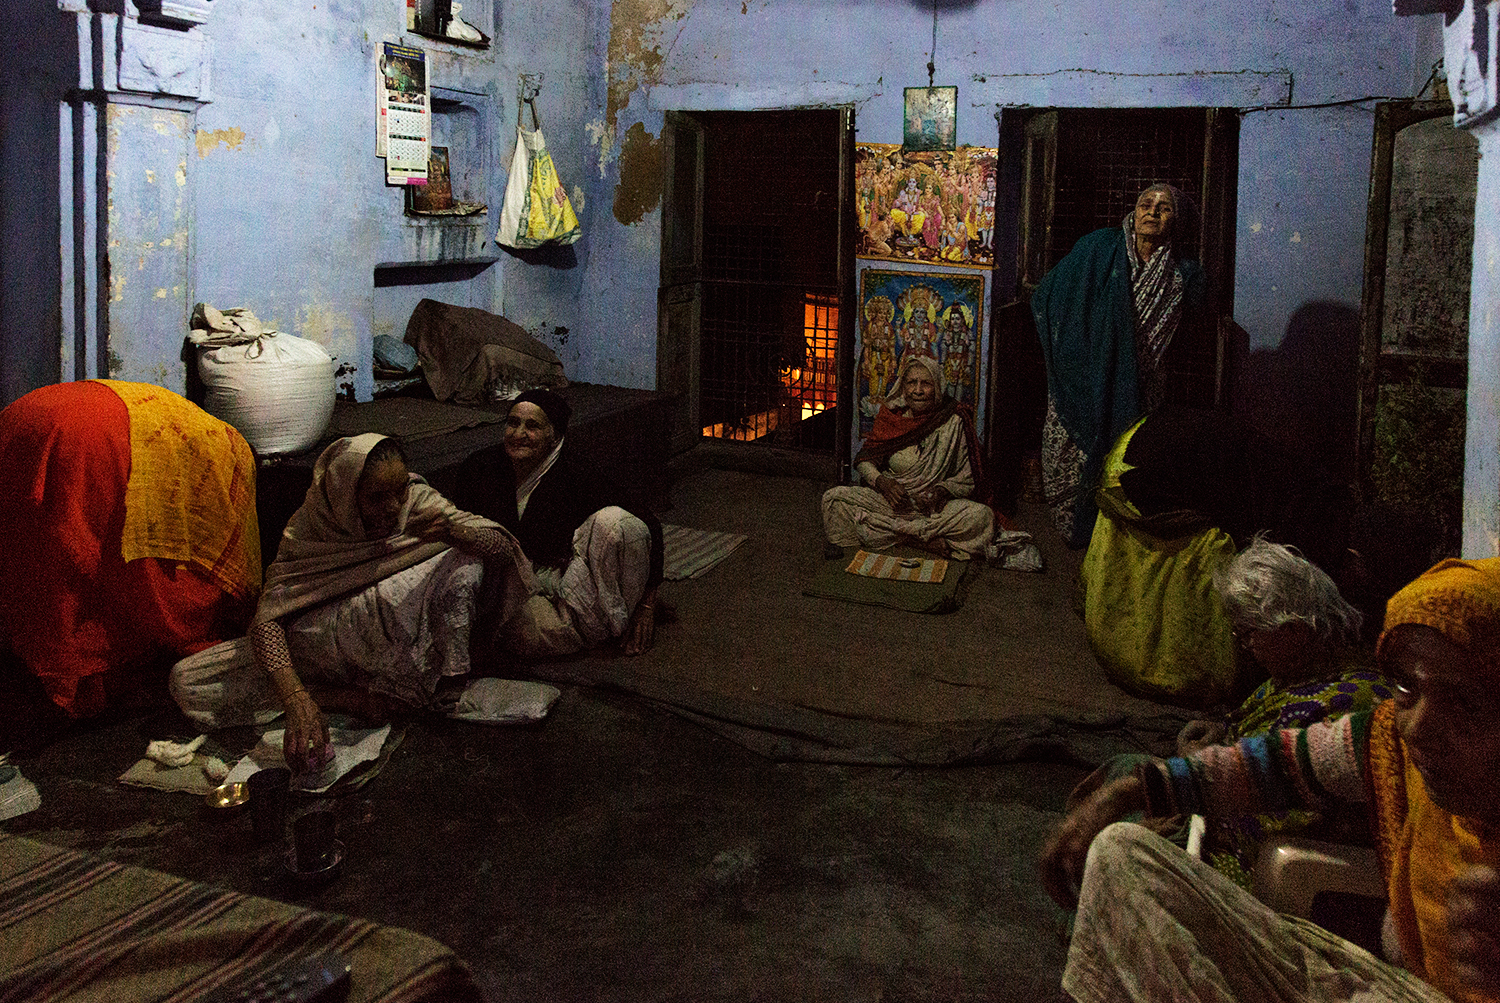 Women relax together and watch television in the ashram after evening Aarti.